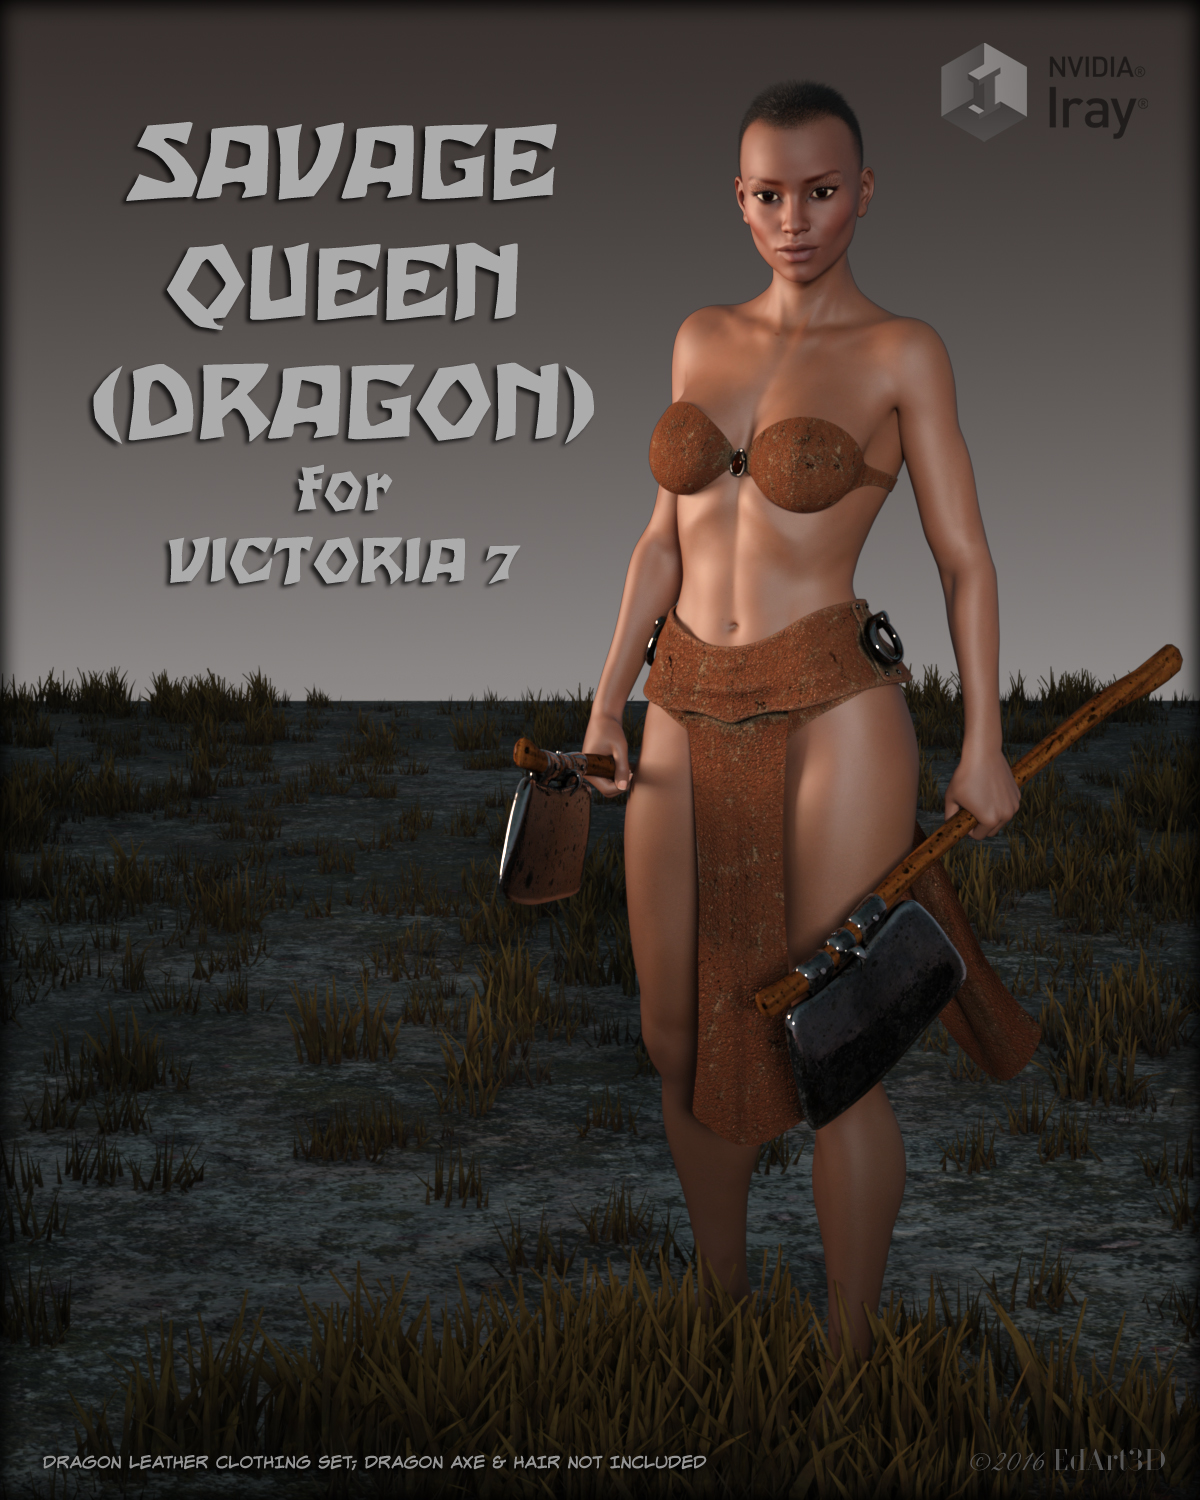 Savage Queen Dragon for Victoria 7 by EdArt3D